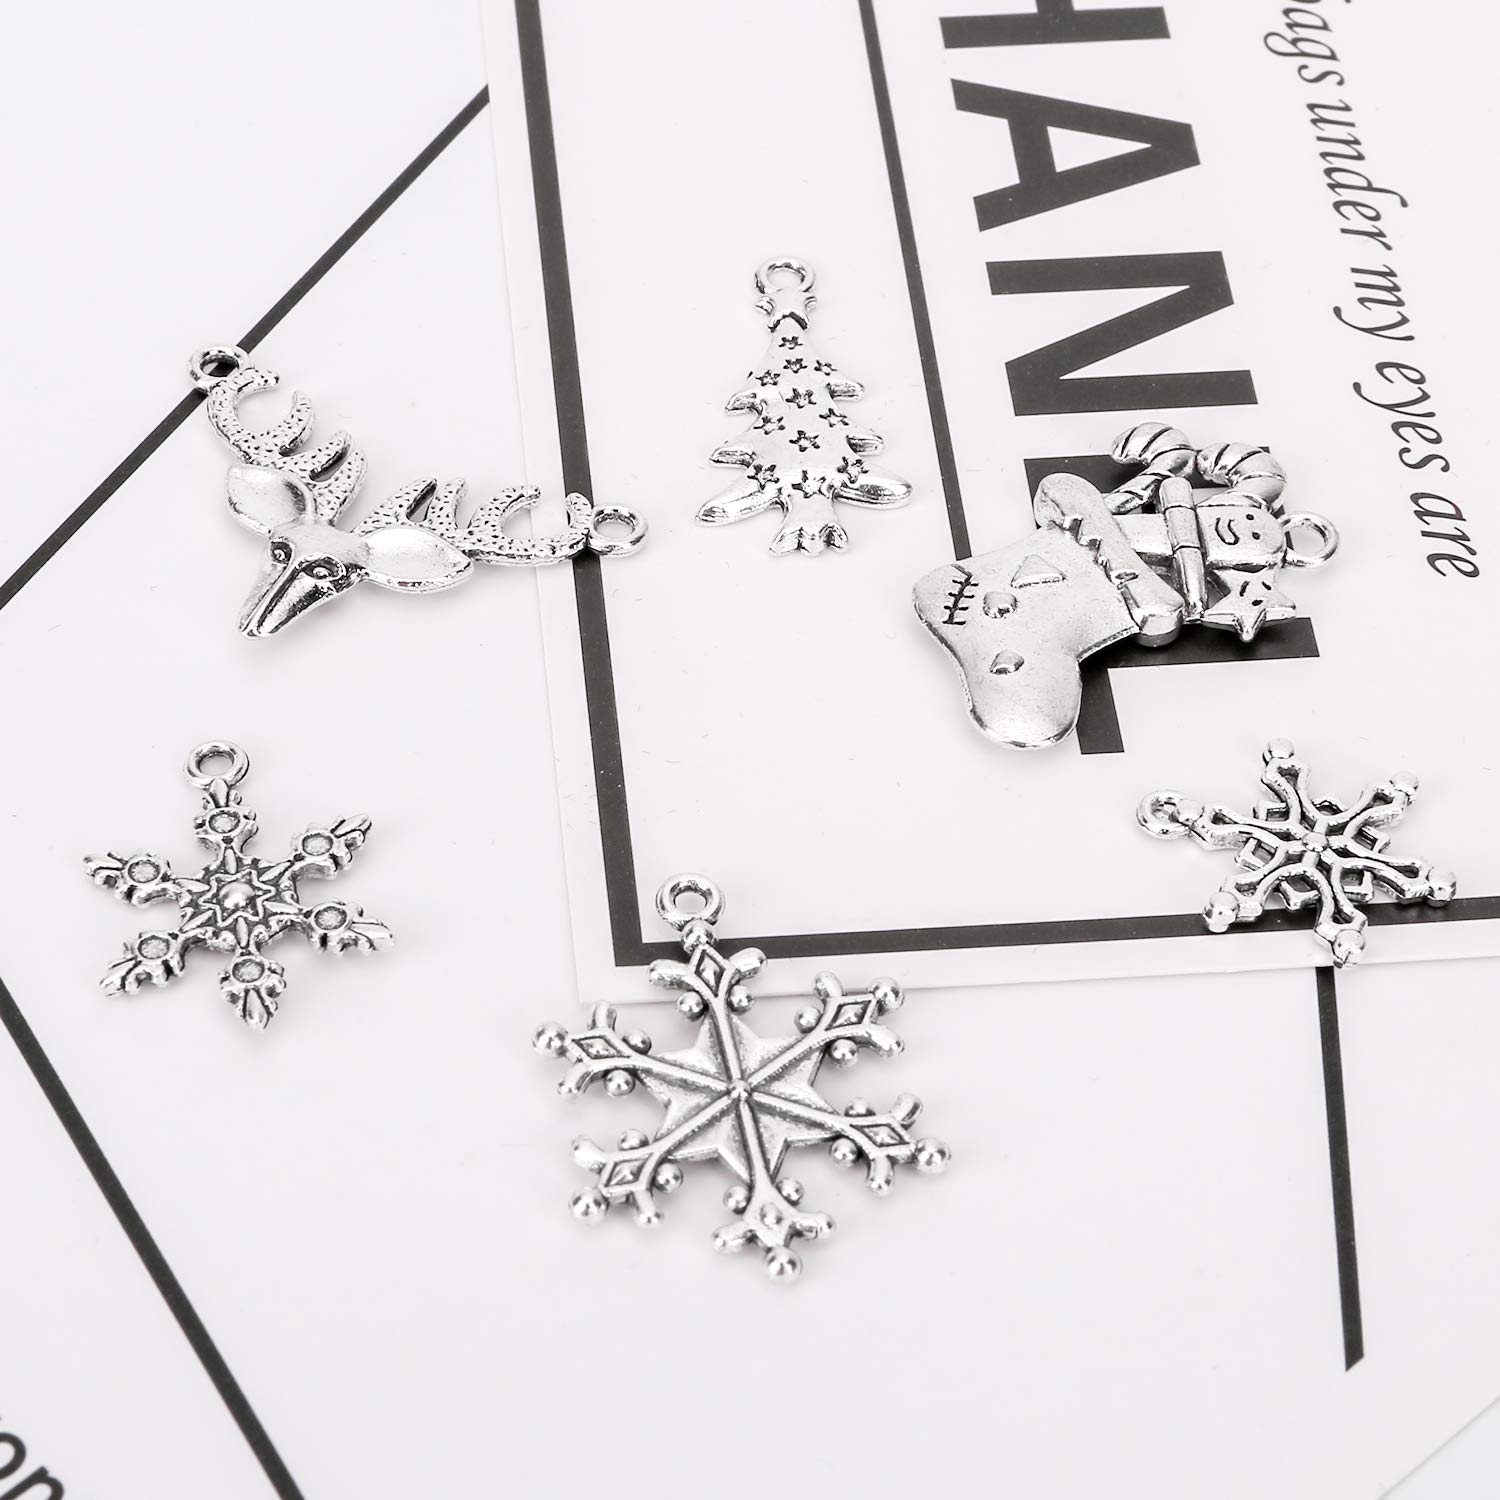 Konsait 120Pack Christmas Charms Bulk Antique Silver Pendants Christmas Pendant Accessory Mixed Craft Supplies Beads Pendants for Necklace Bracelet Jewelry Making Crafting and Christmas Ornaments